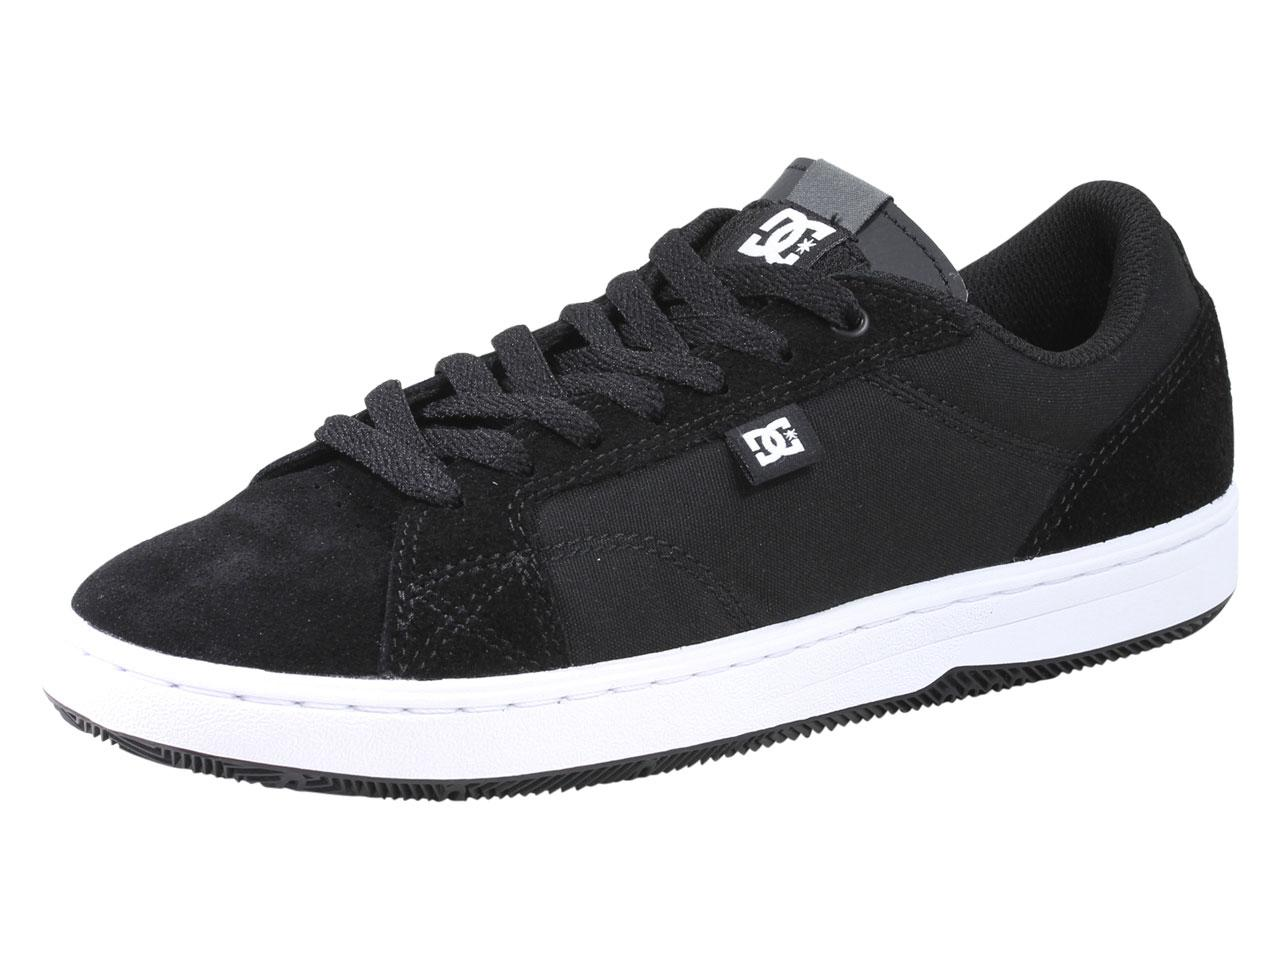 Image of DC Men's Astor Skateboarding Sneakers Shoes - Black - 12 D(M) US